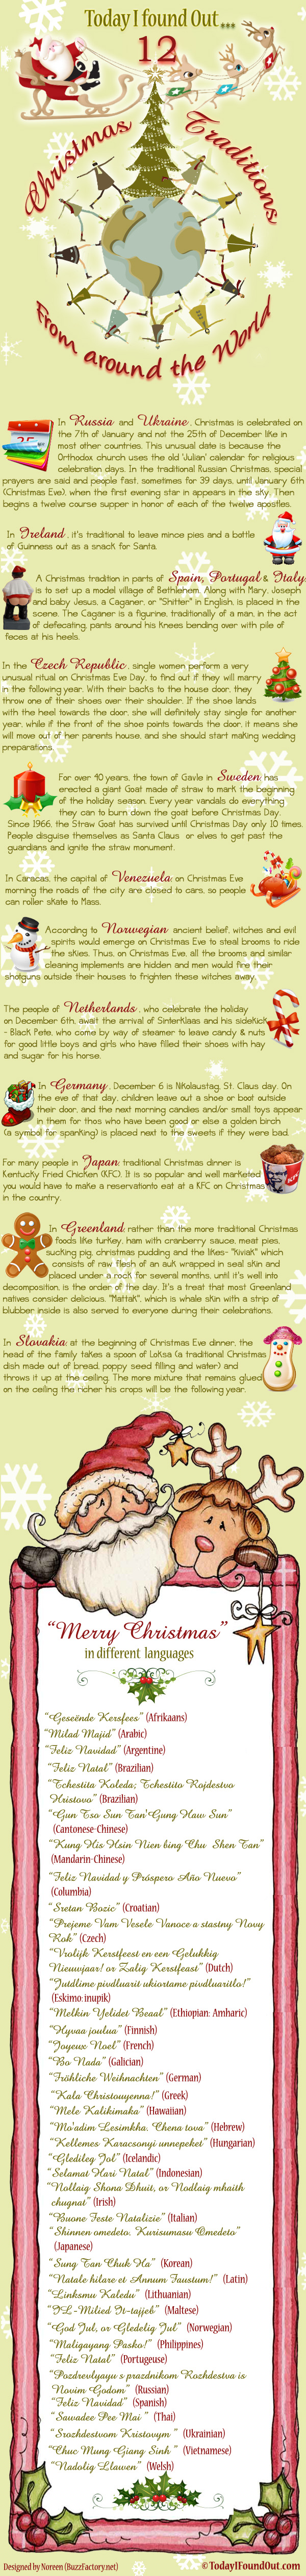 christmas-traditions-infographic1-1